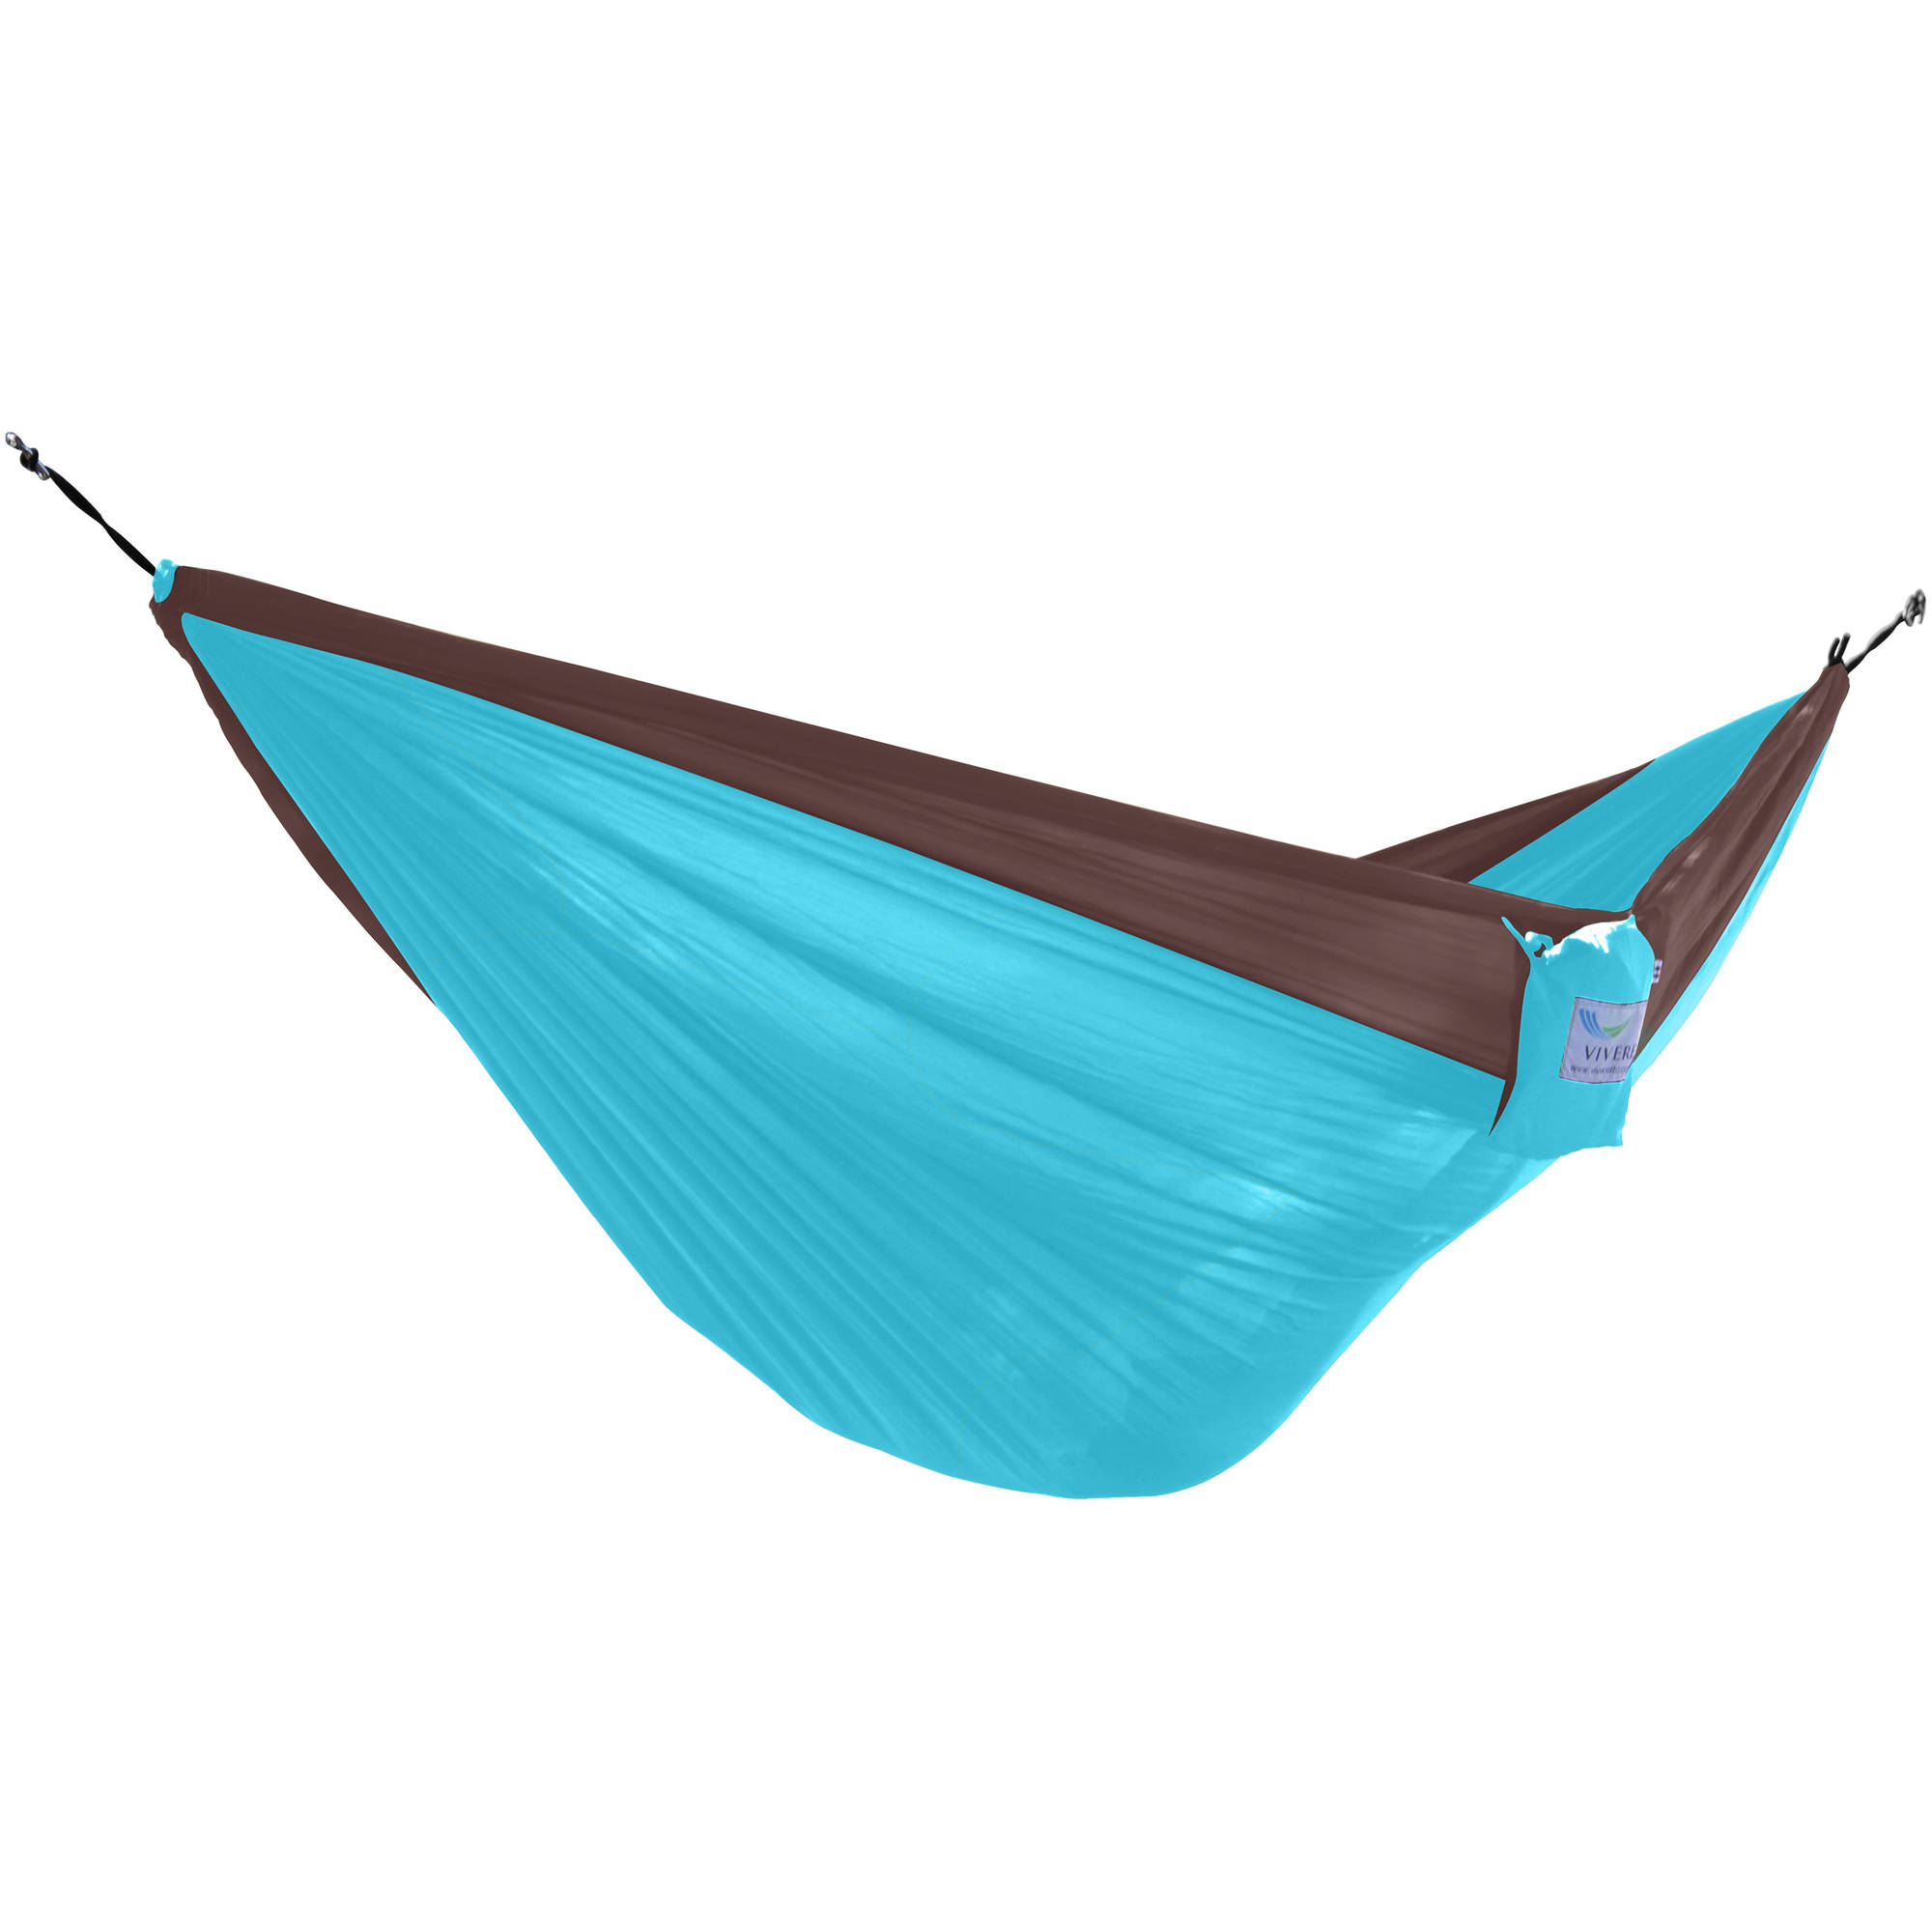 Parachute Hammock, Double (Chocolate Turquoise) by Vivere